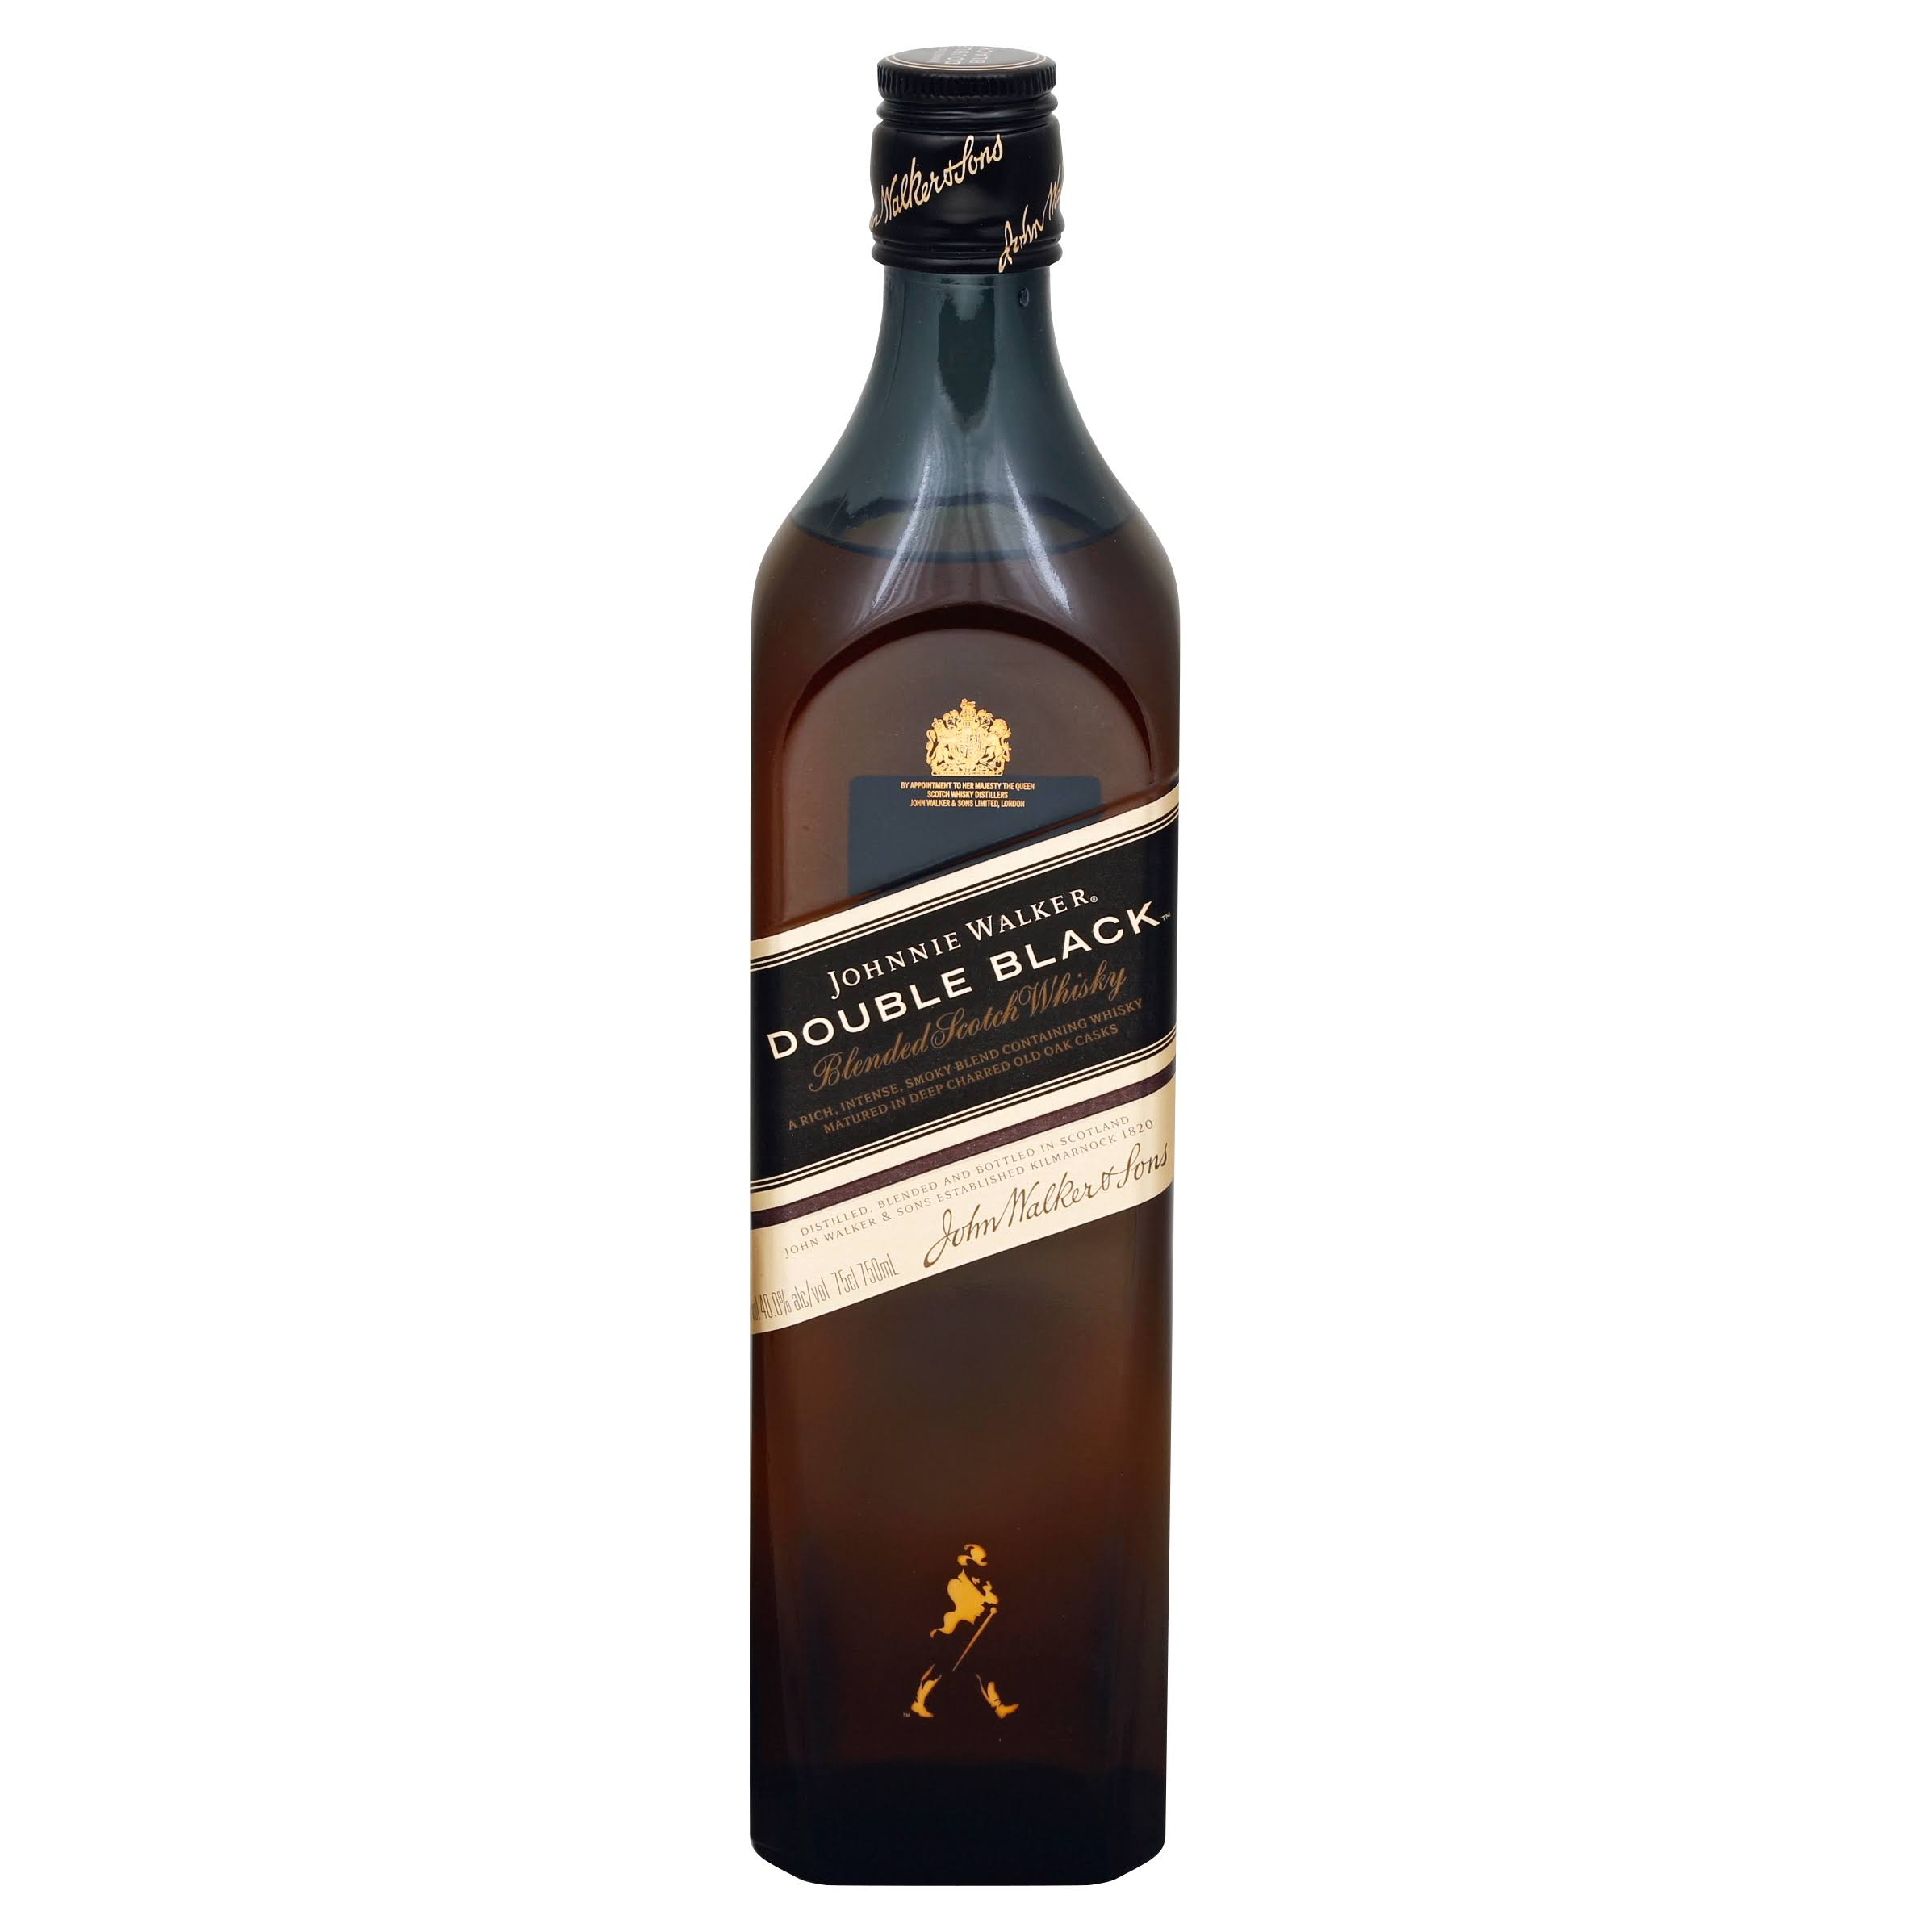 Johnnie Walker Double Black Blended Scotch Whiskey - 750 ml bottle